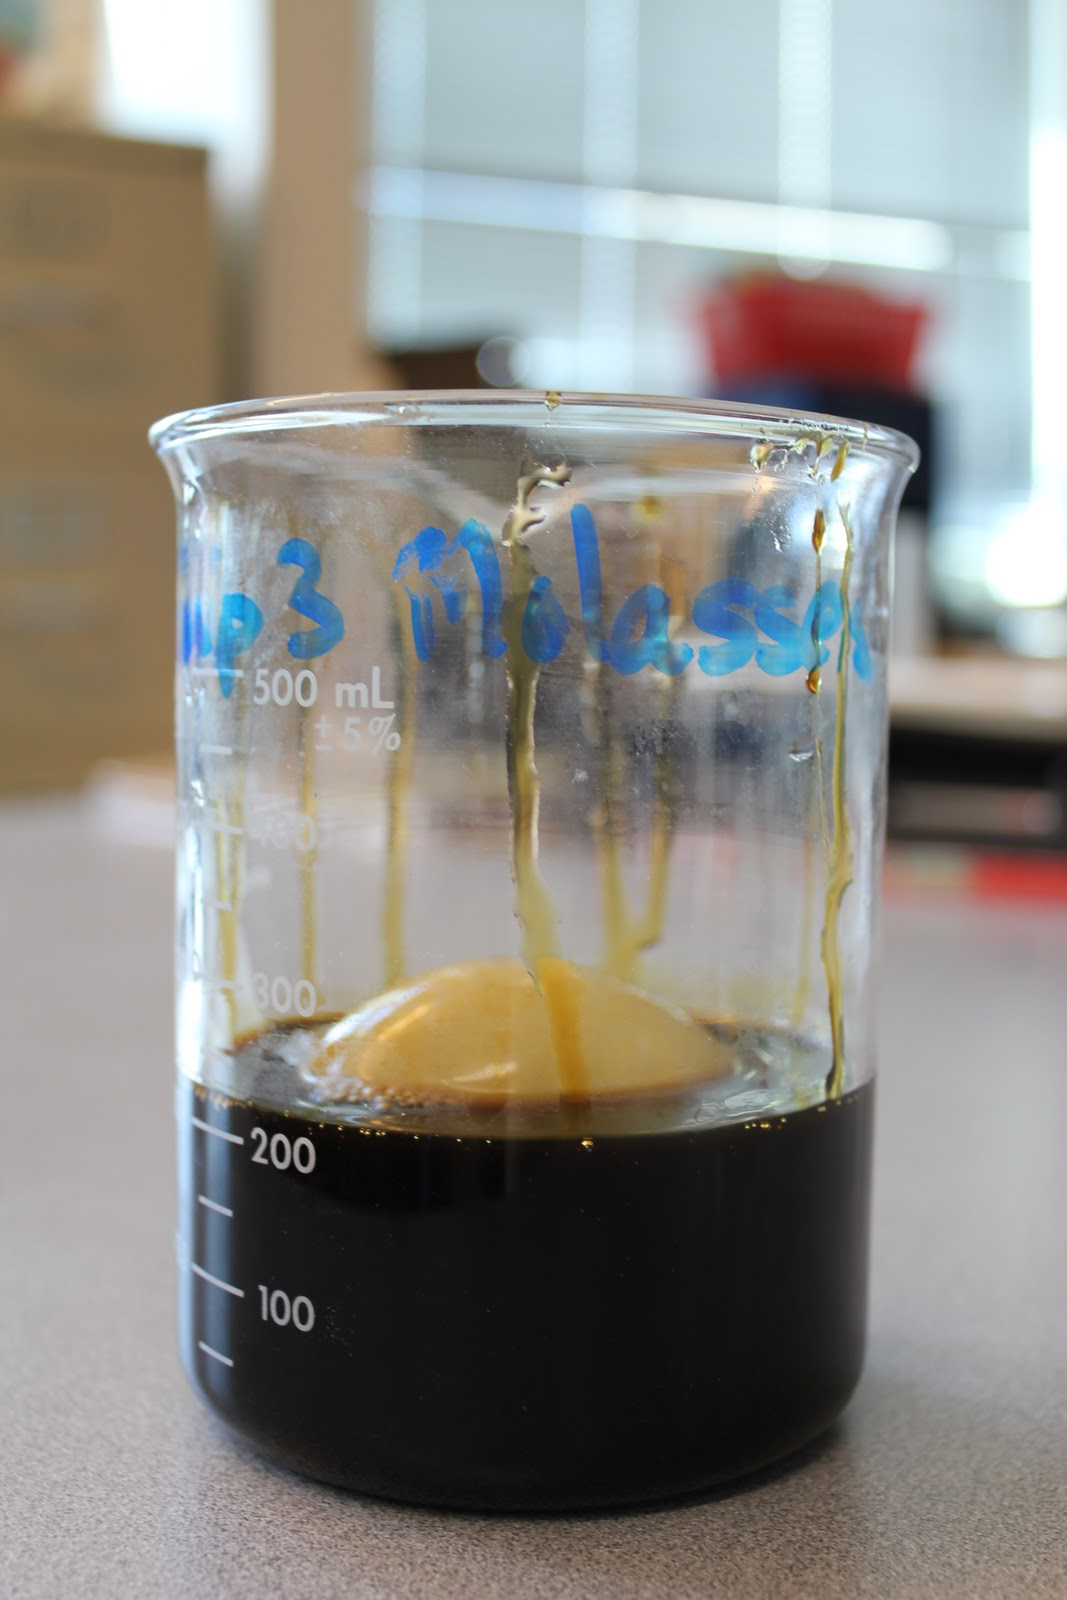 The Science Experience: Osmosis Egg Lab Part 1